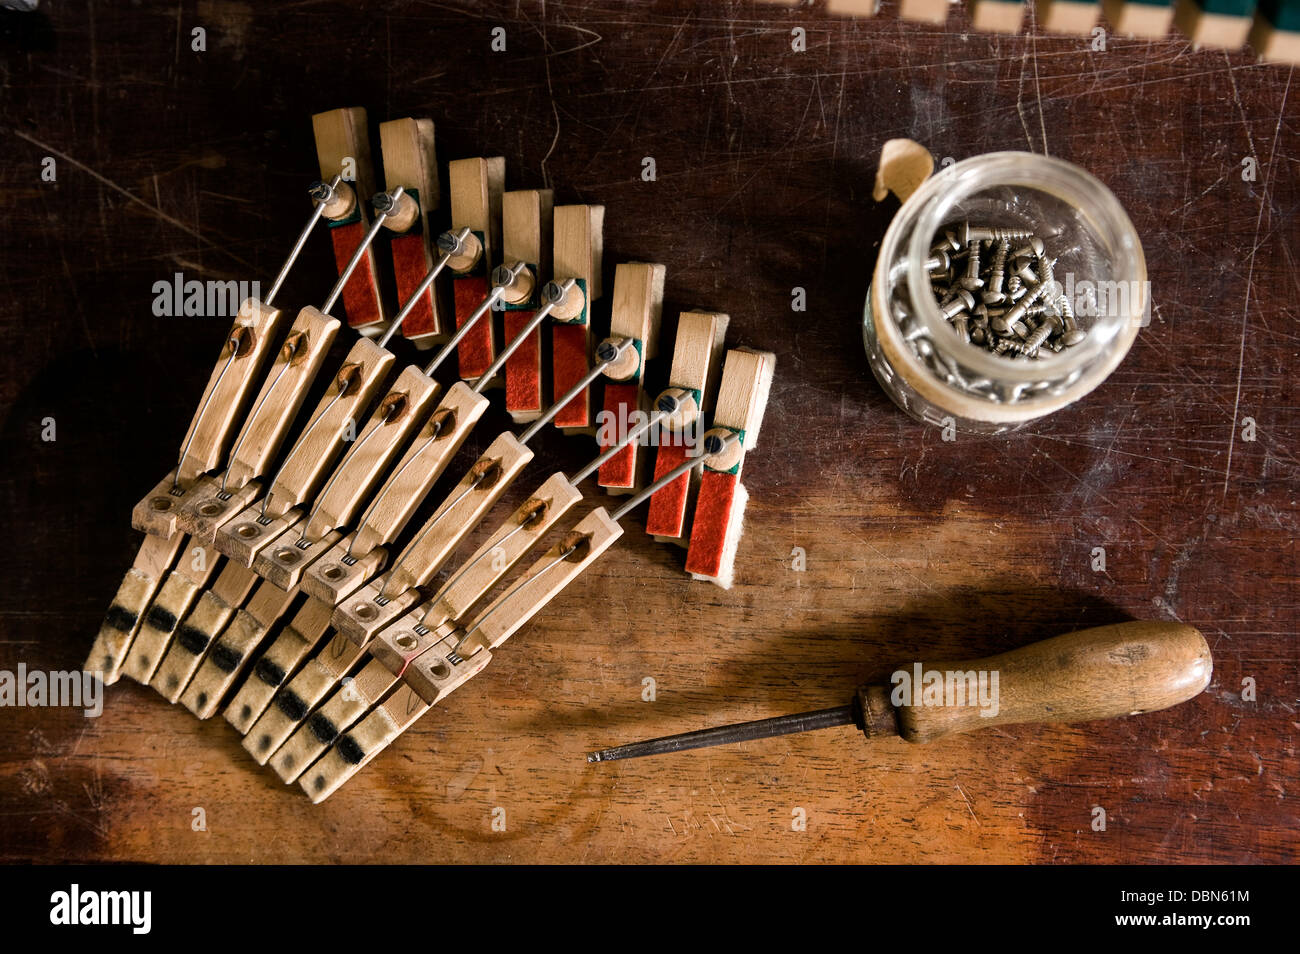 Musical mechanism of a piano alongside work tool, Regensburg, Bavaria, Germany - Stock Image